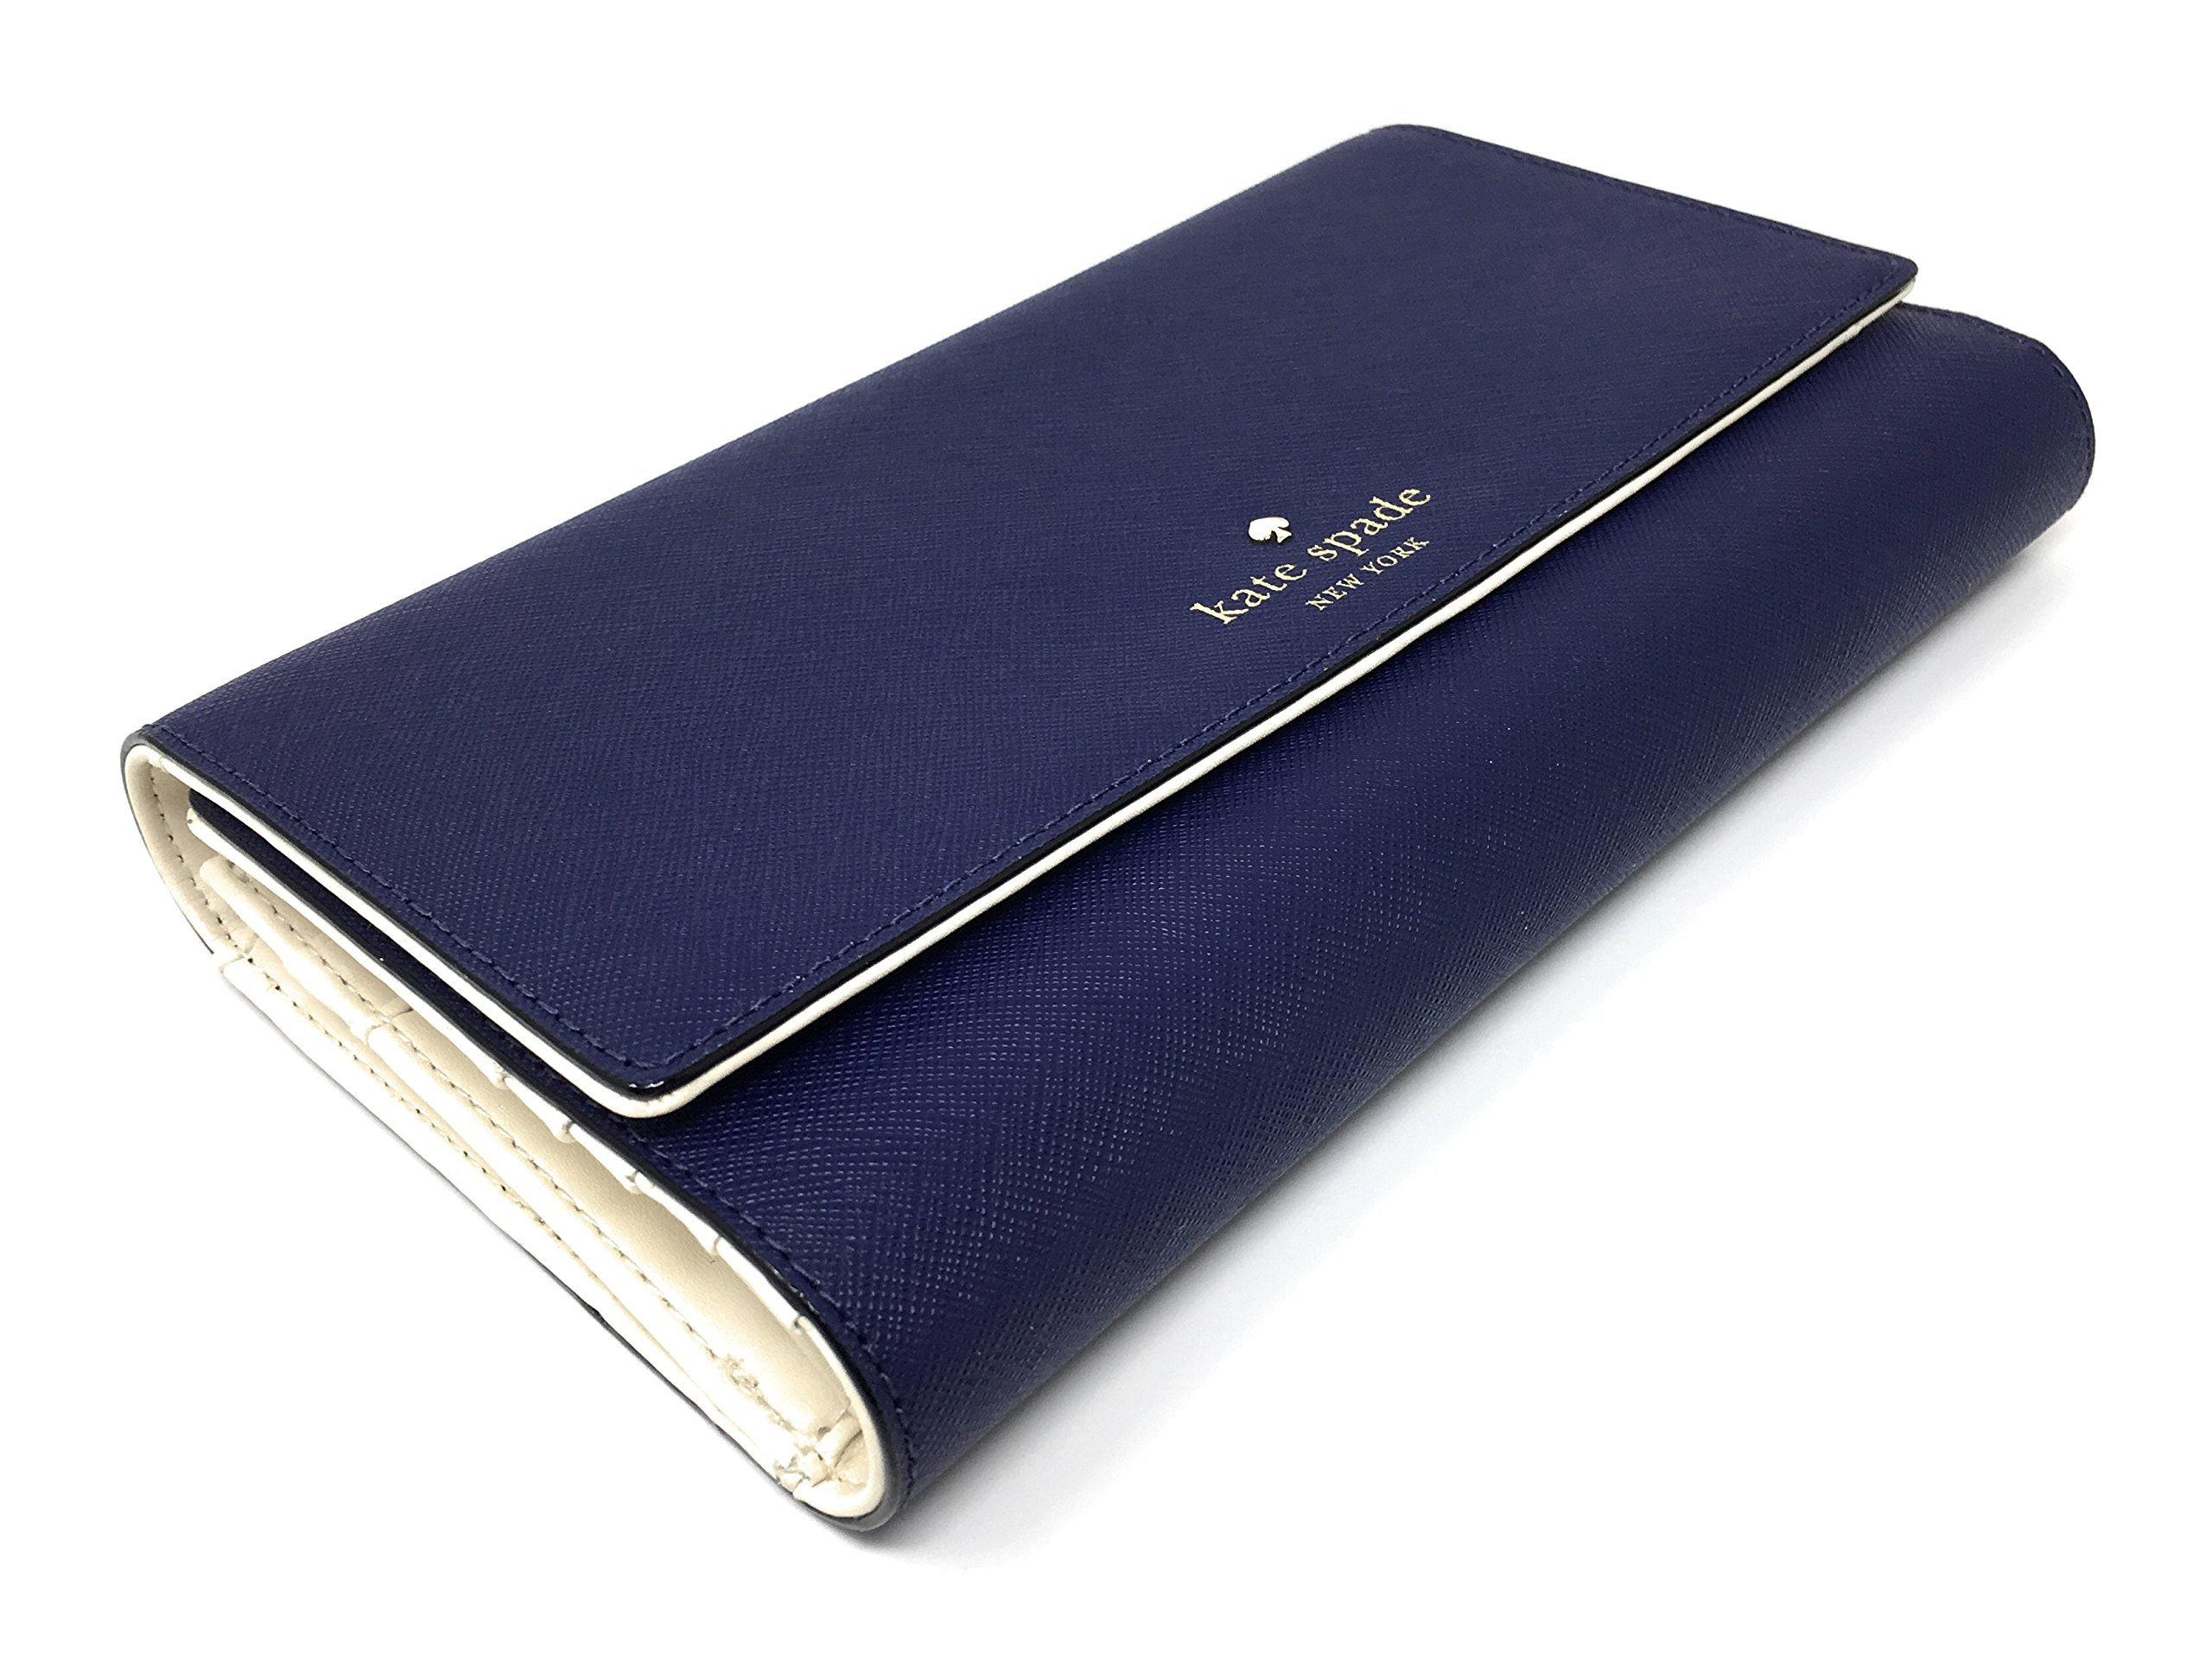 Kate Spade New York Mikas Pond Phoenix Trifold Leather Wallet (Sapphire) by Kate Spade New York (Image #6)